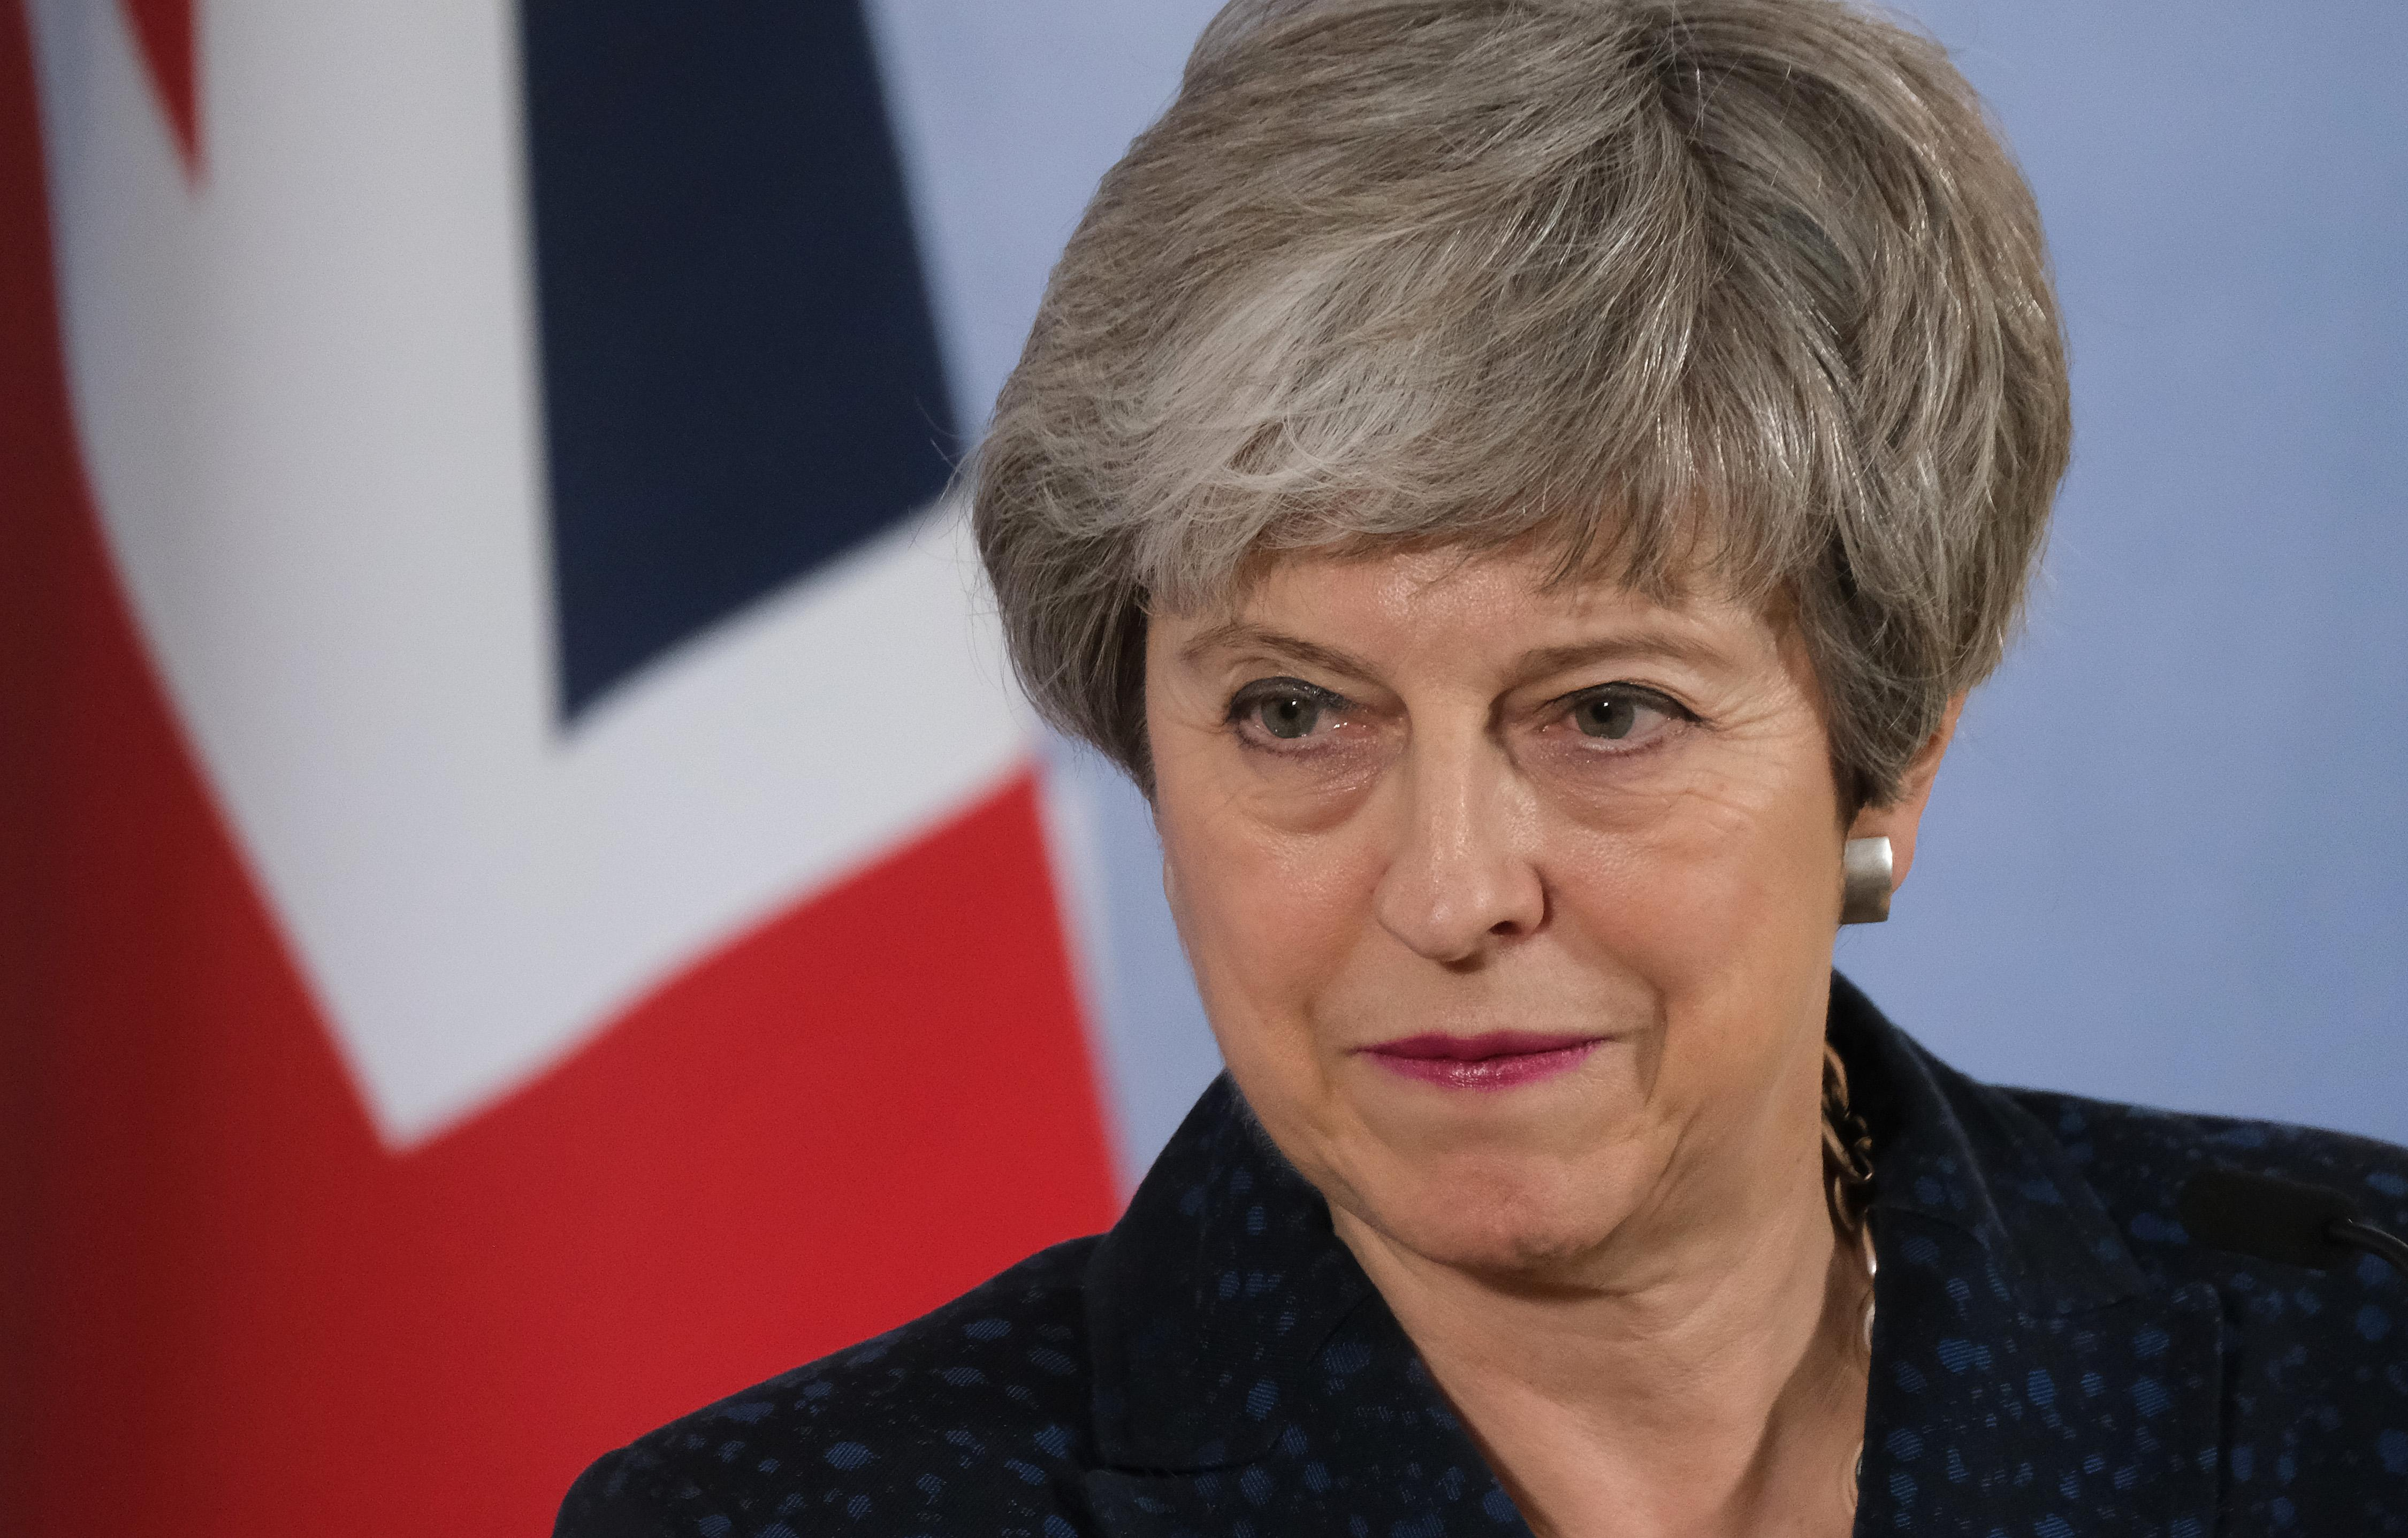 GettyImages-Theresa May March 22